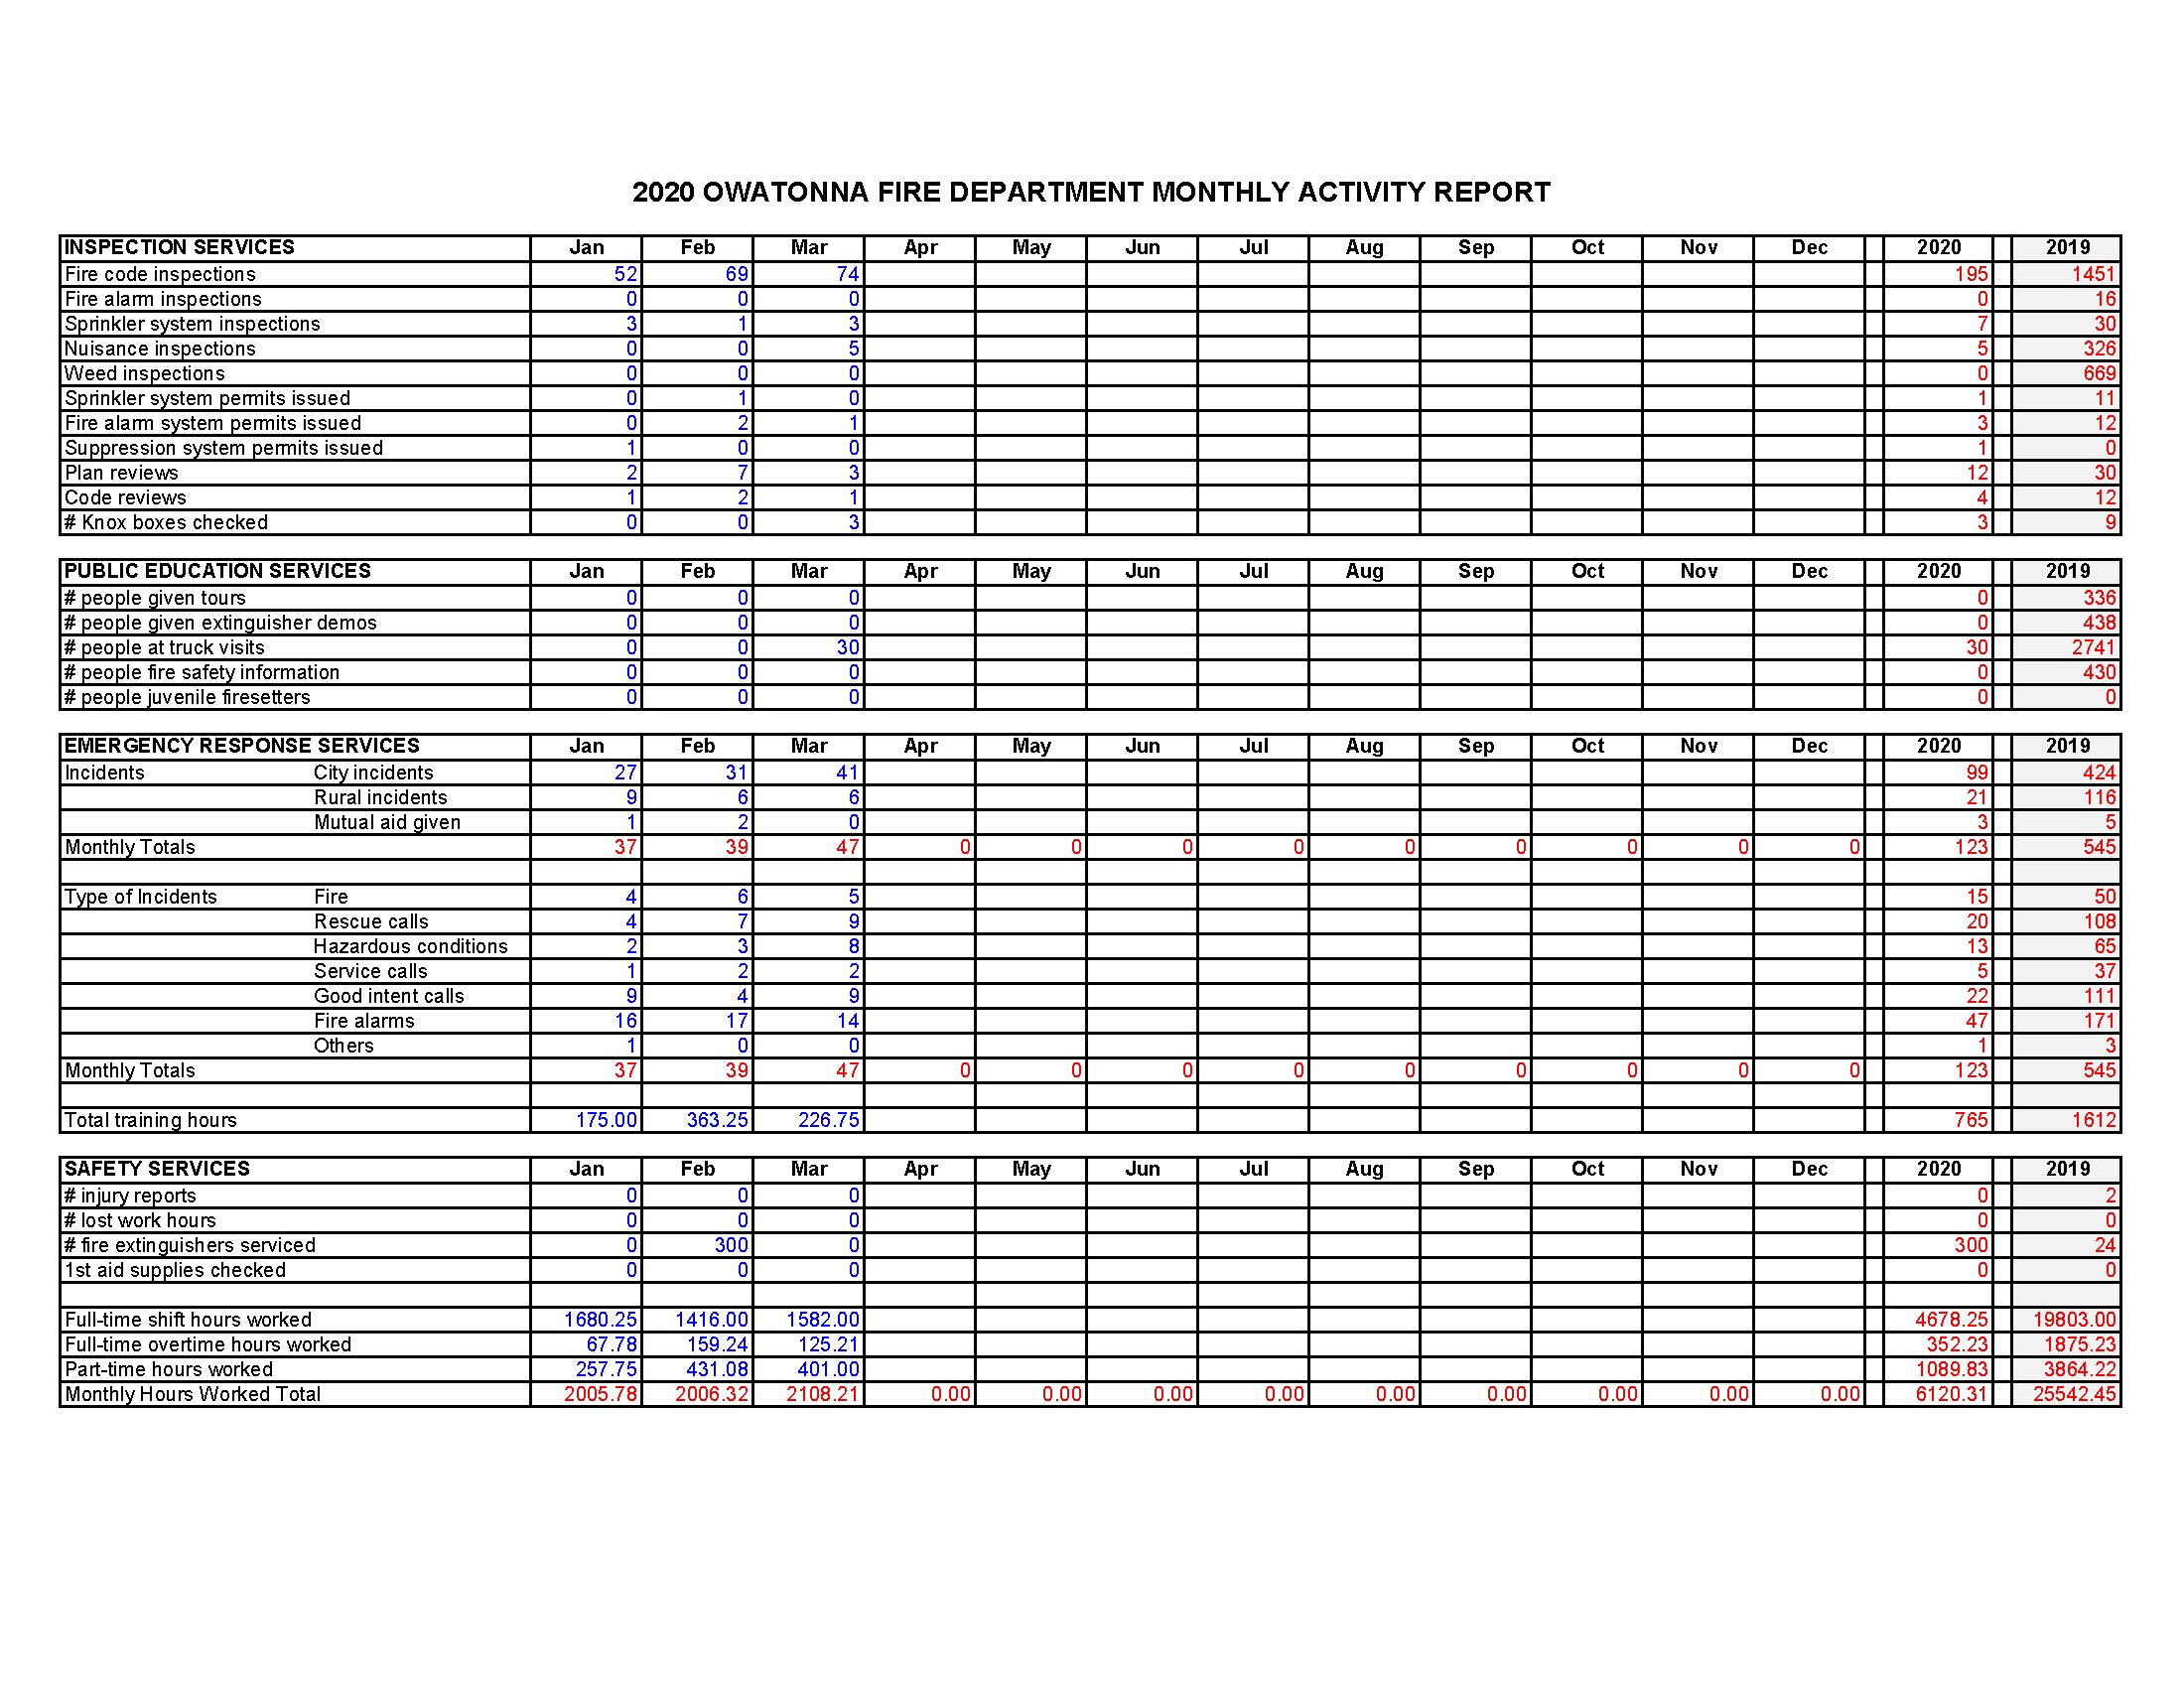 Fire Department Monthly Activity Report